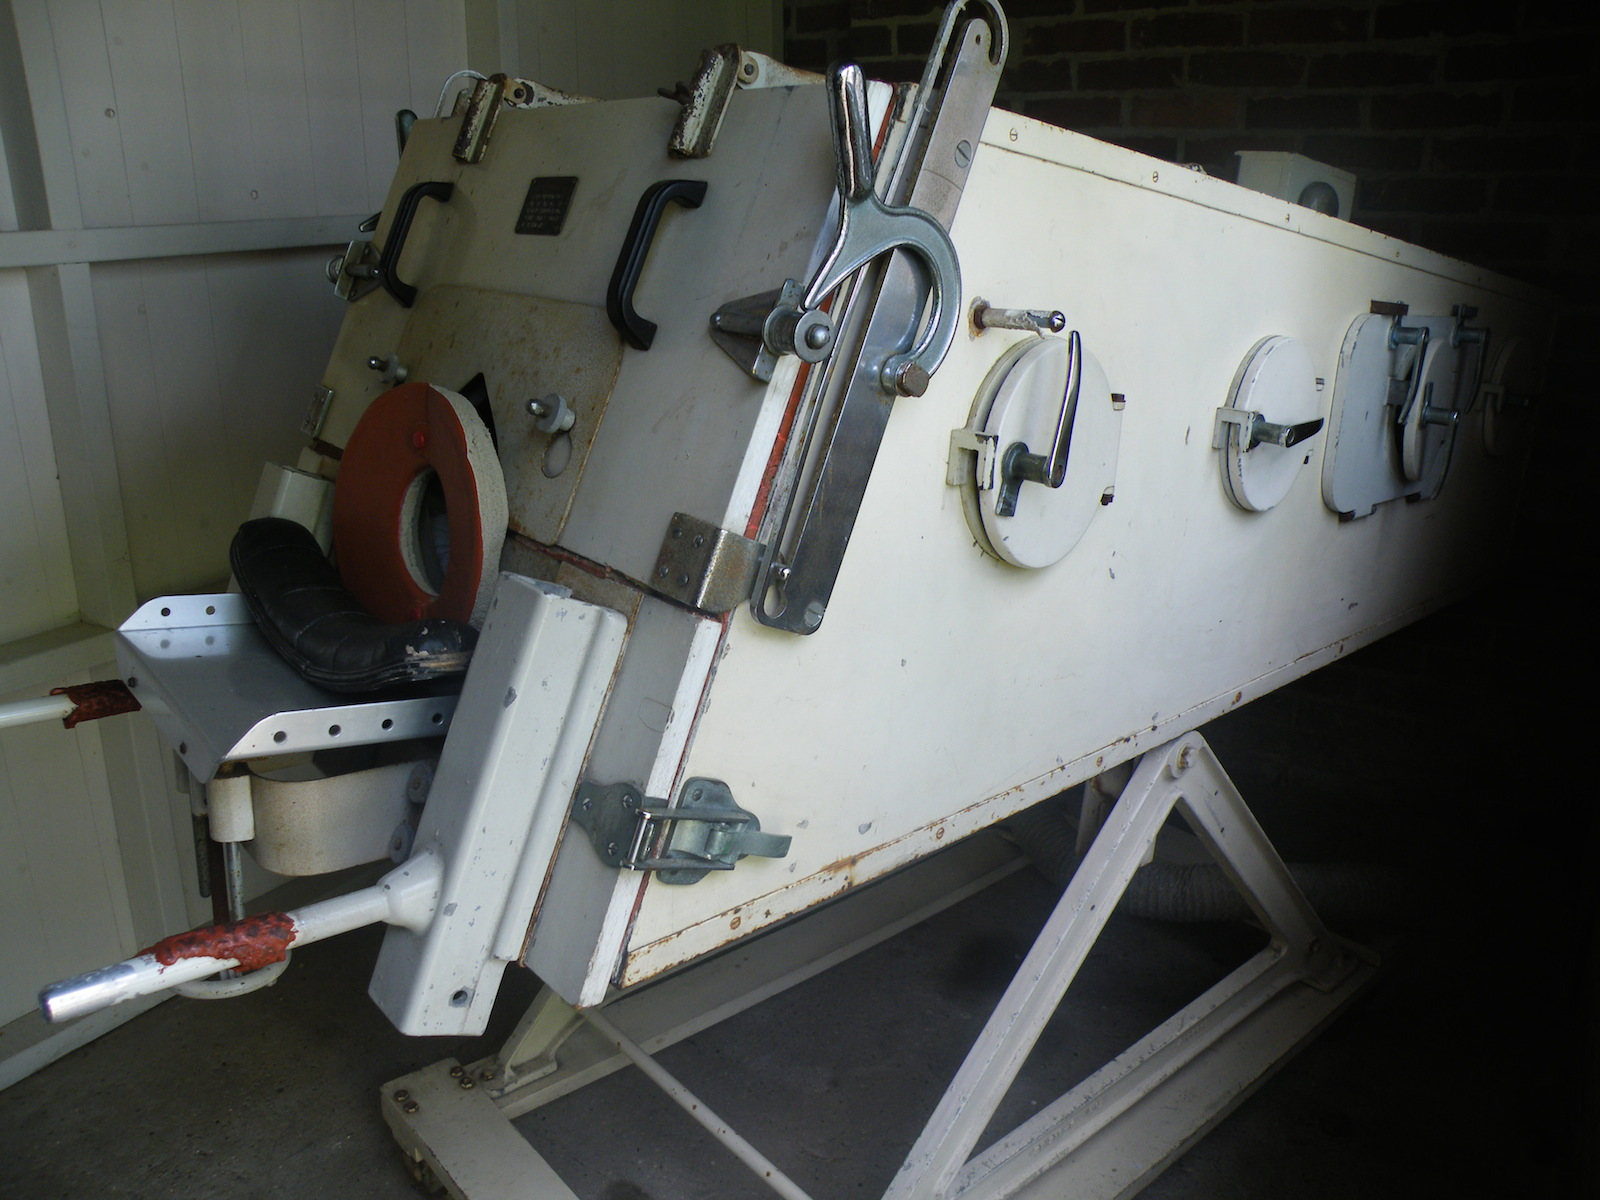 An early iron lung